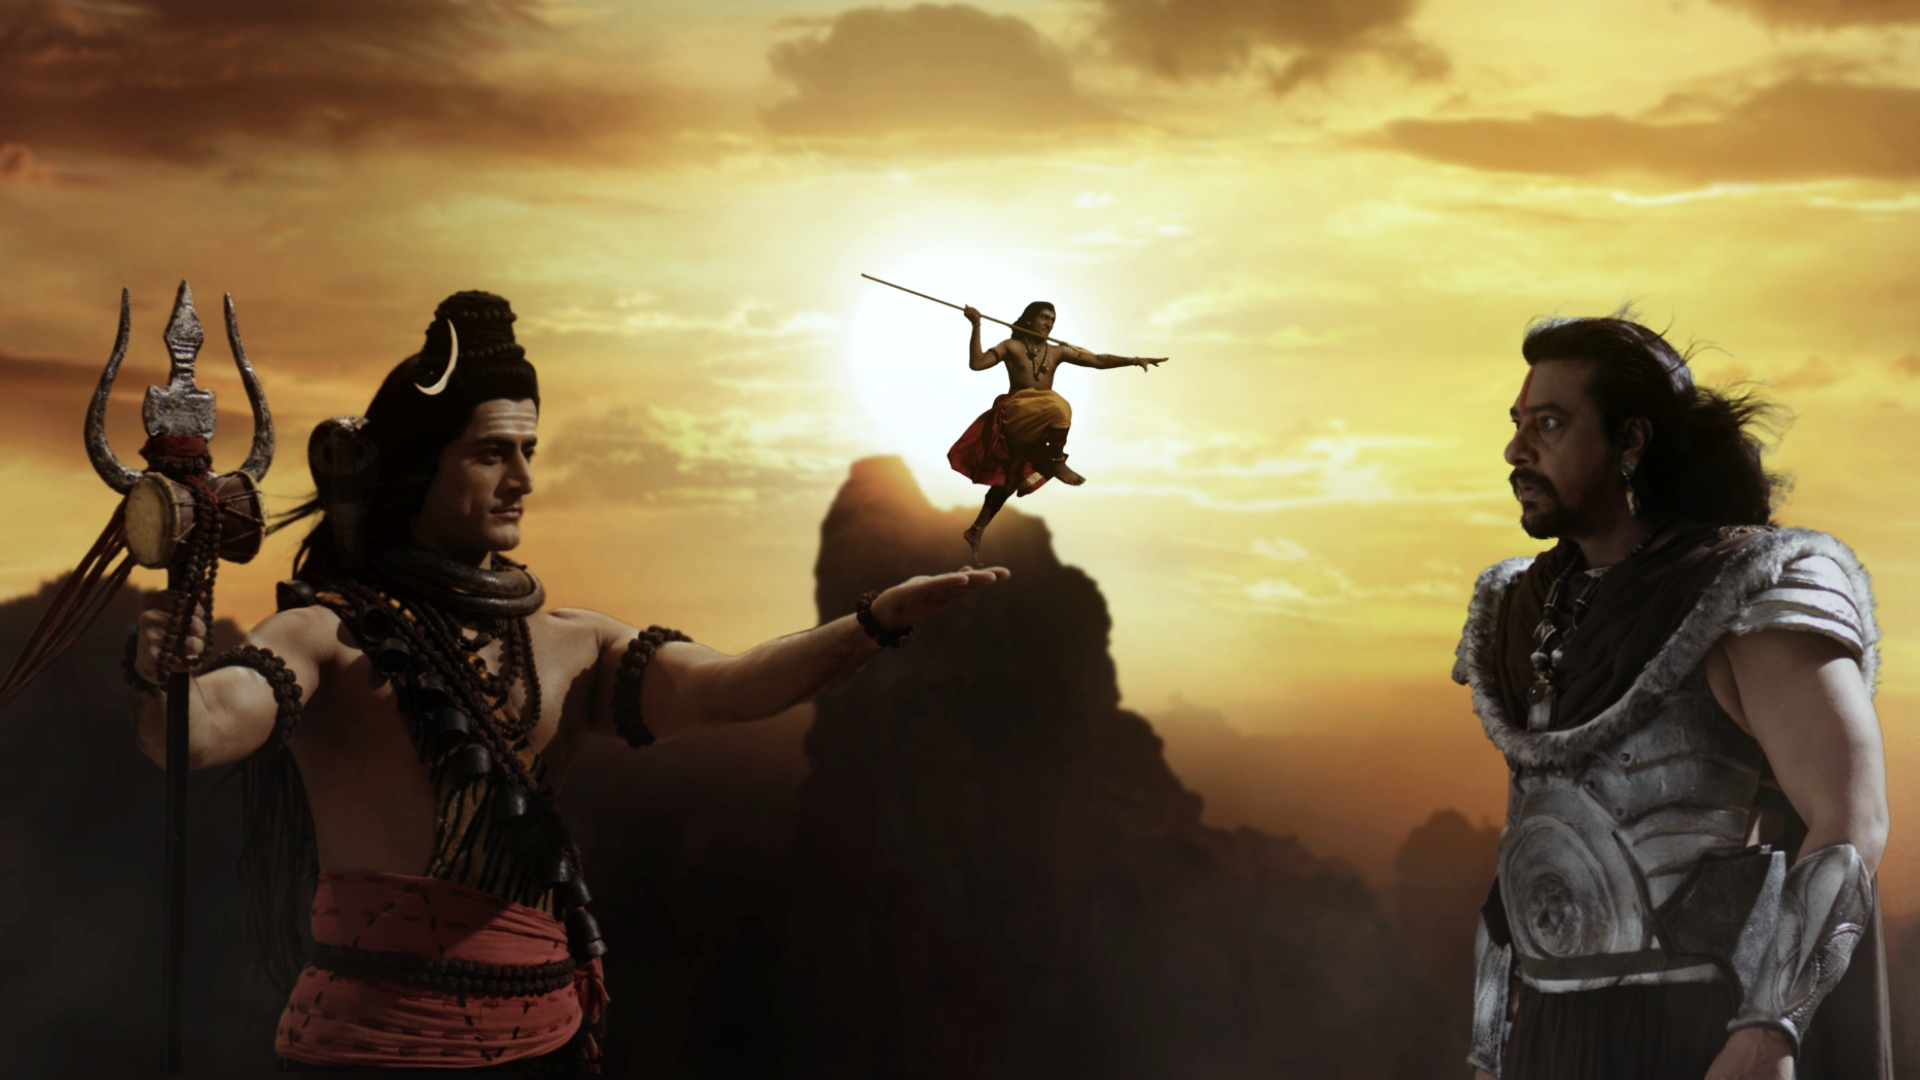 mahadev hd wallpaper life ok many hd wallpaper